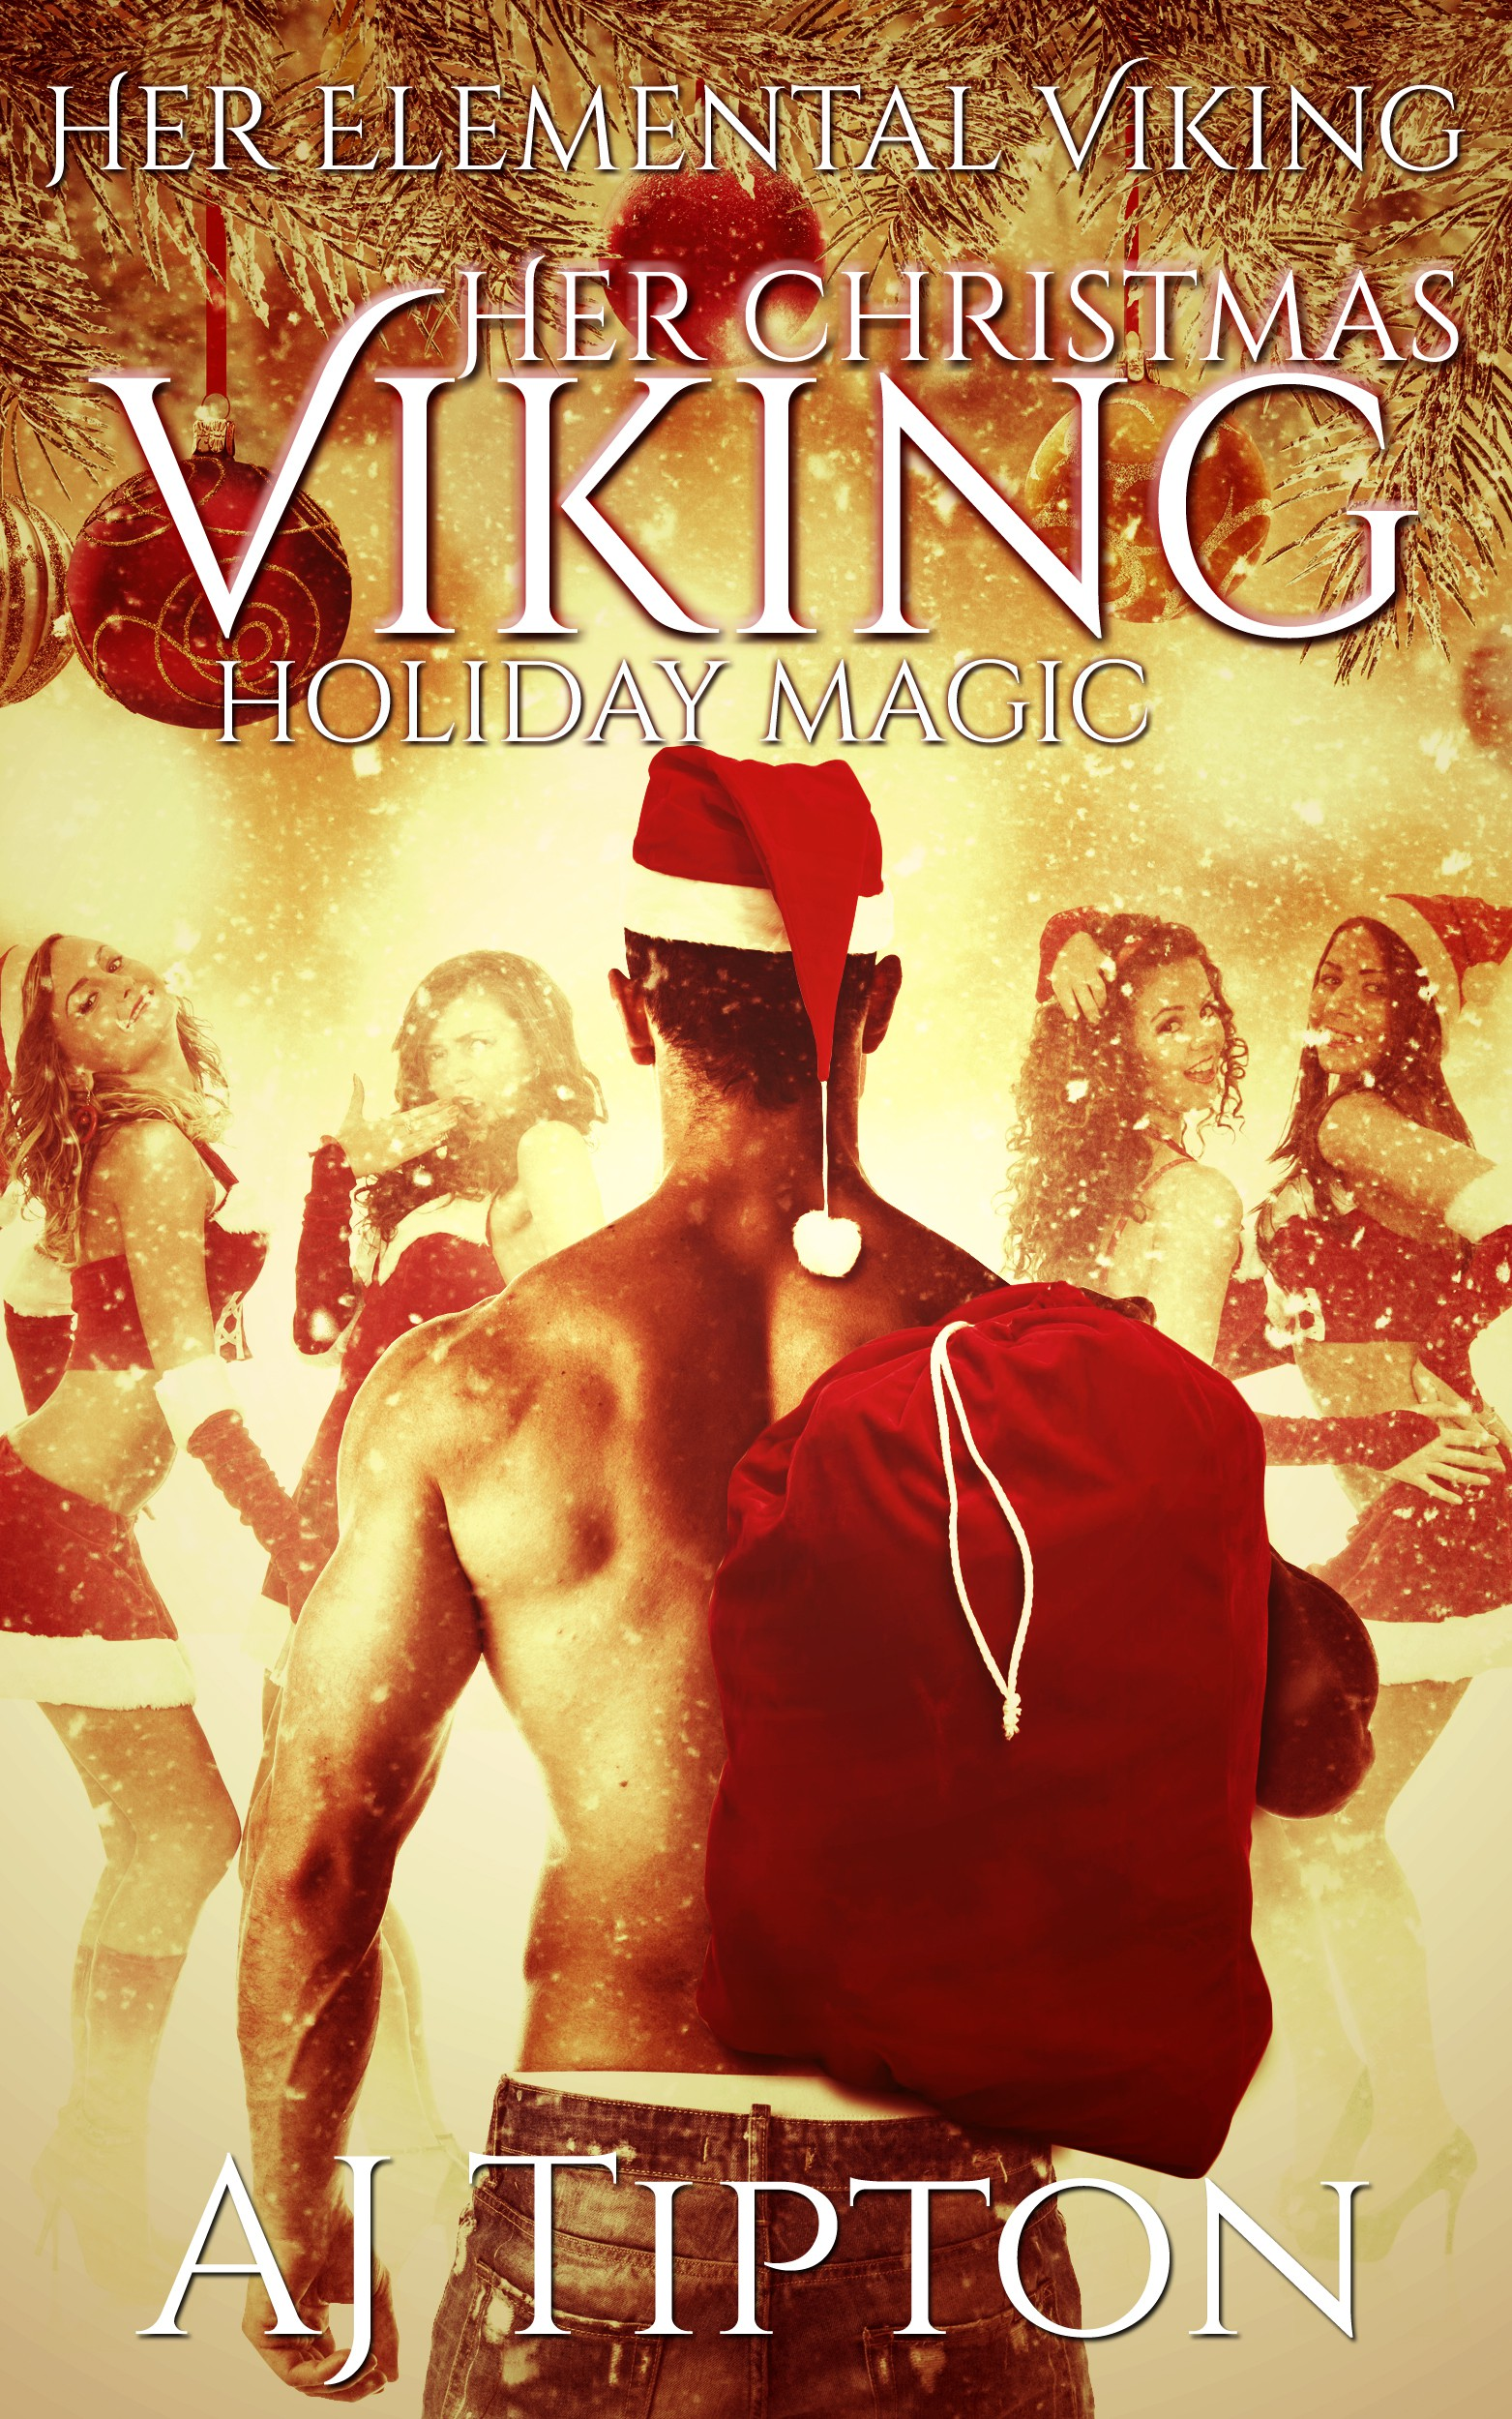 Her Christmas Viking: Holiday Magic - newest ebook cover for the Her Elemental Viking series